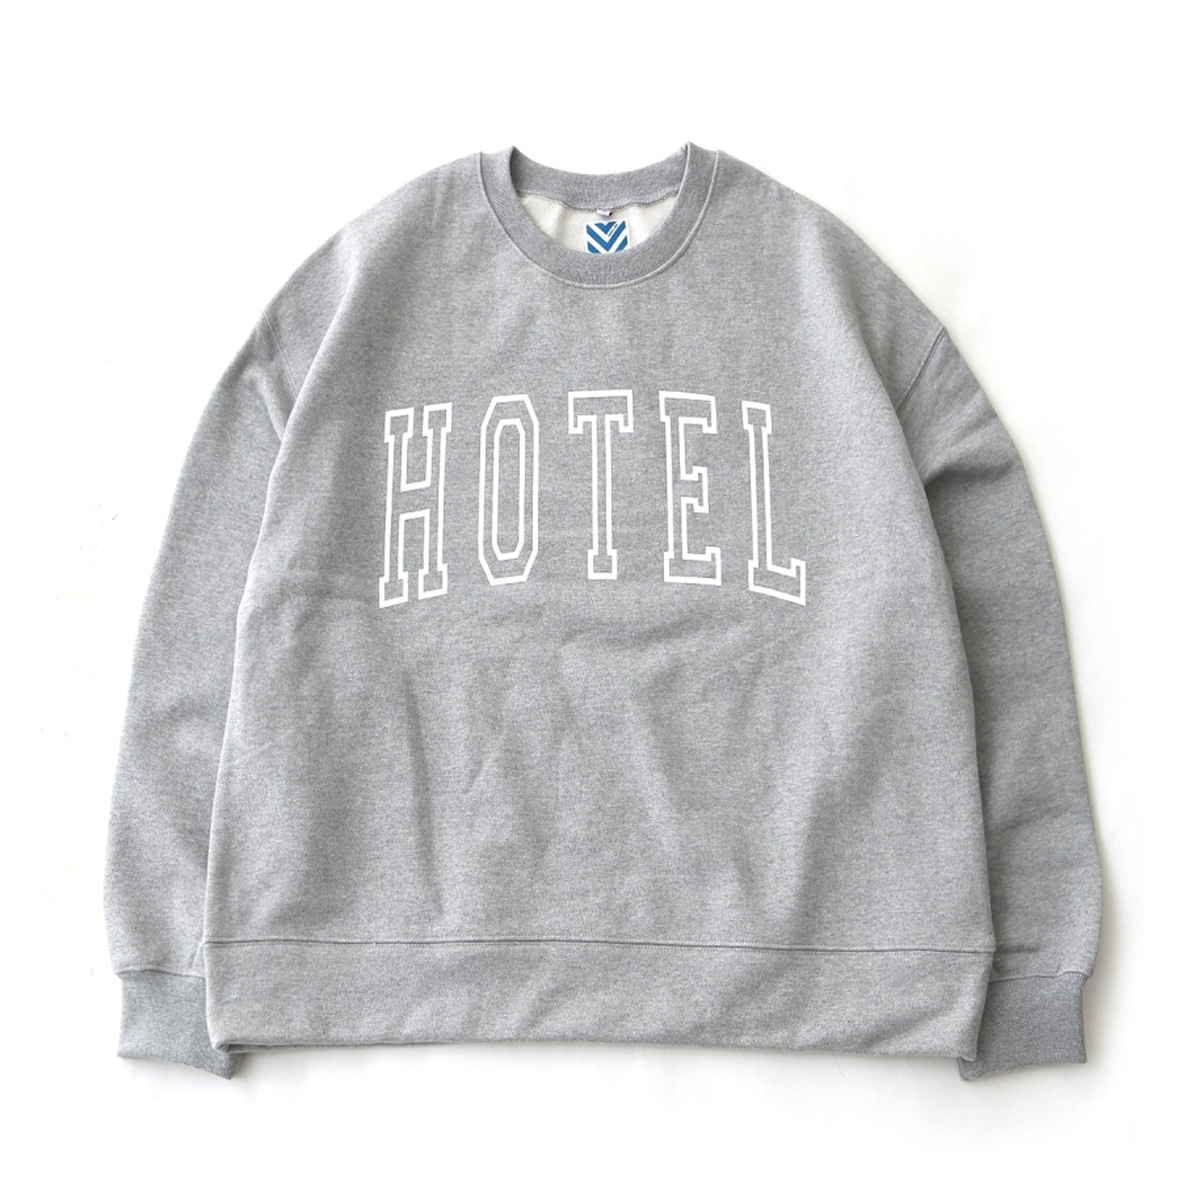 [DAILY INN] HOTEL BIG LOGO SOFT HEAVY WEIGHT OVERSIZED SWEAT 'MELANGE'